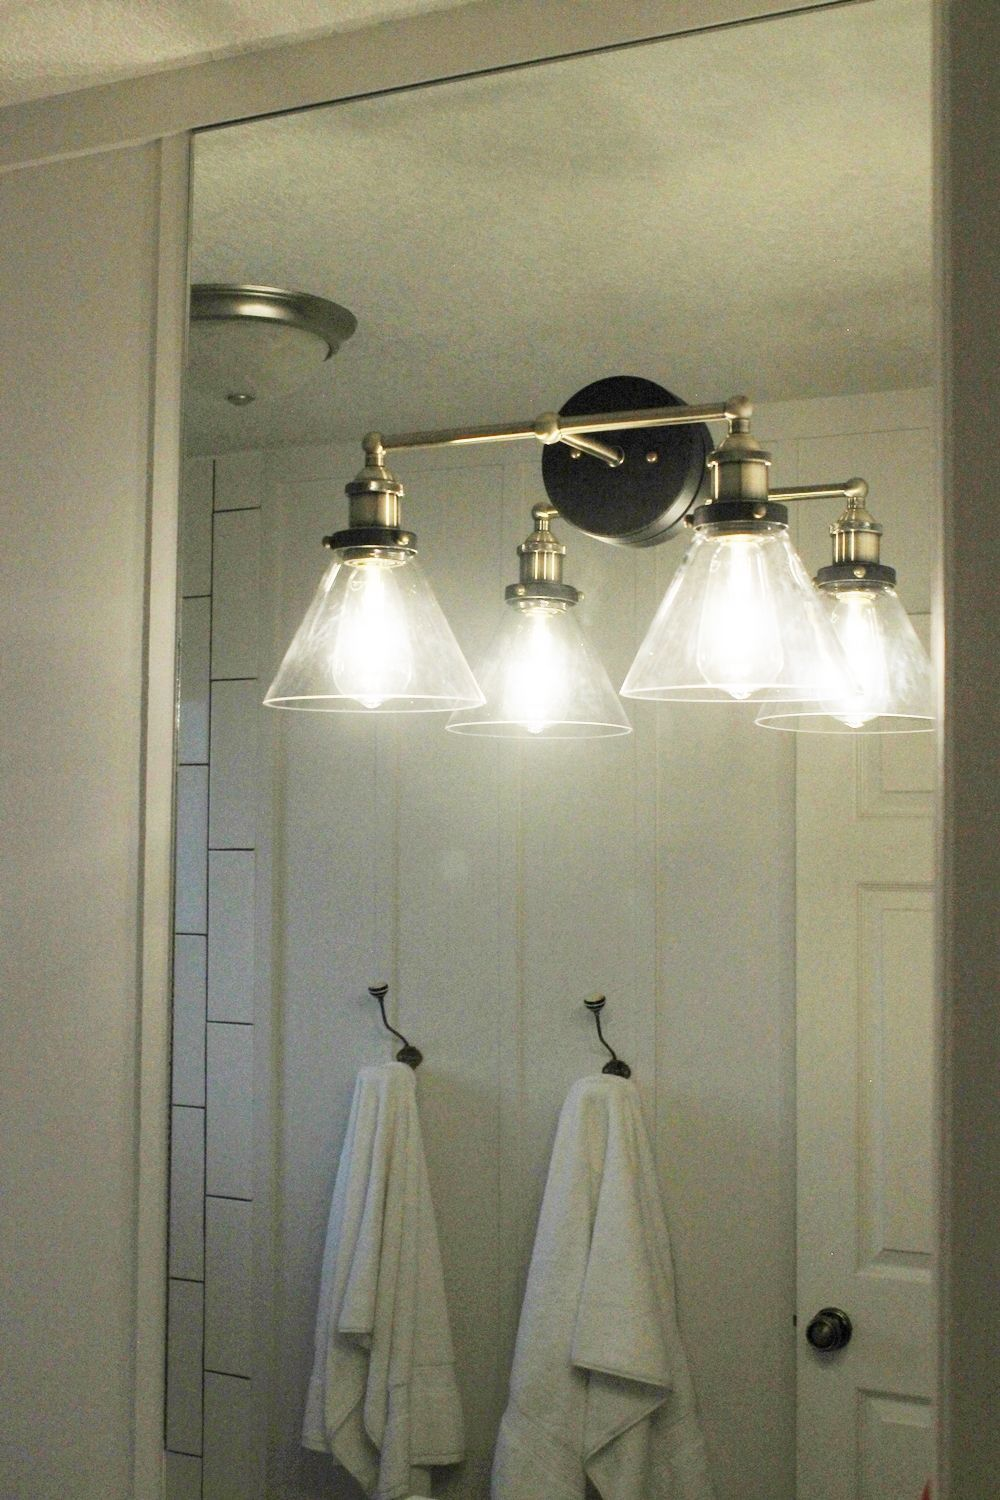 Bathroom Light Fixture On Mirror